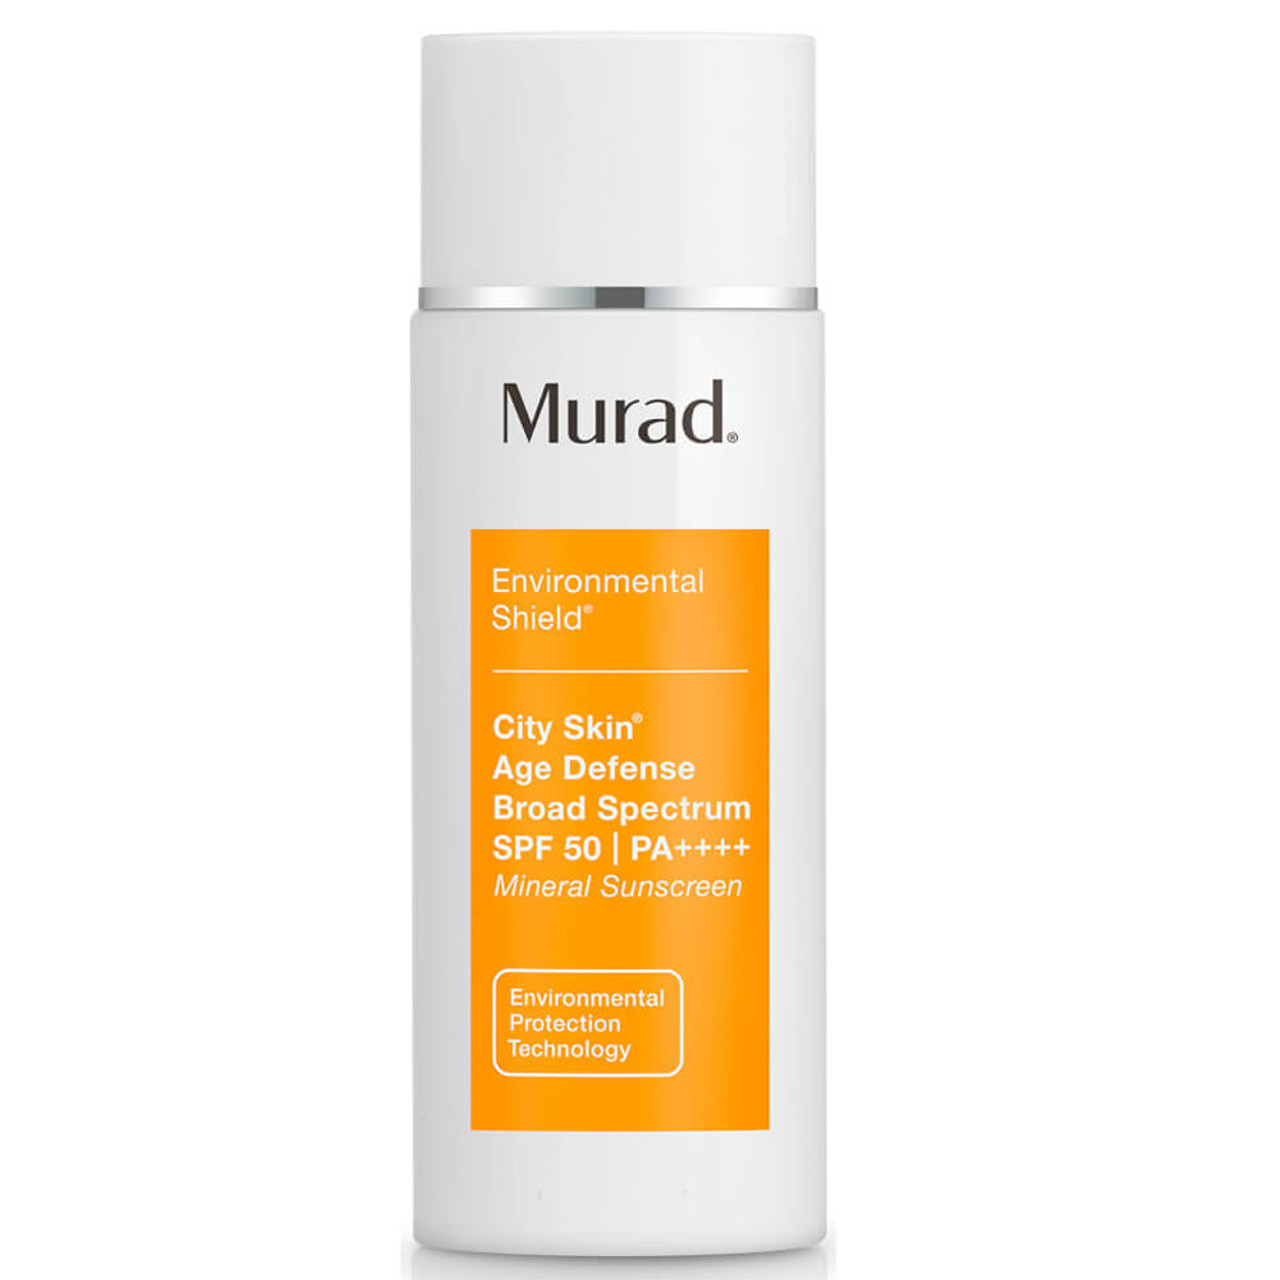 Murad Environmental Shield™ City Skin Age Defense Broad Spectrum SPF 50 PA++++